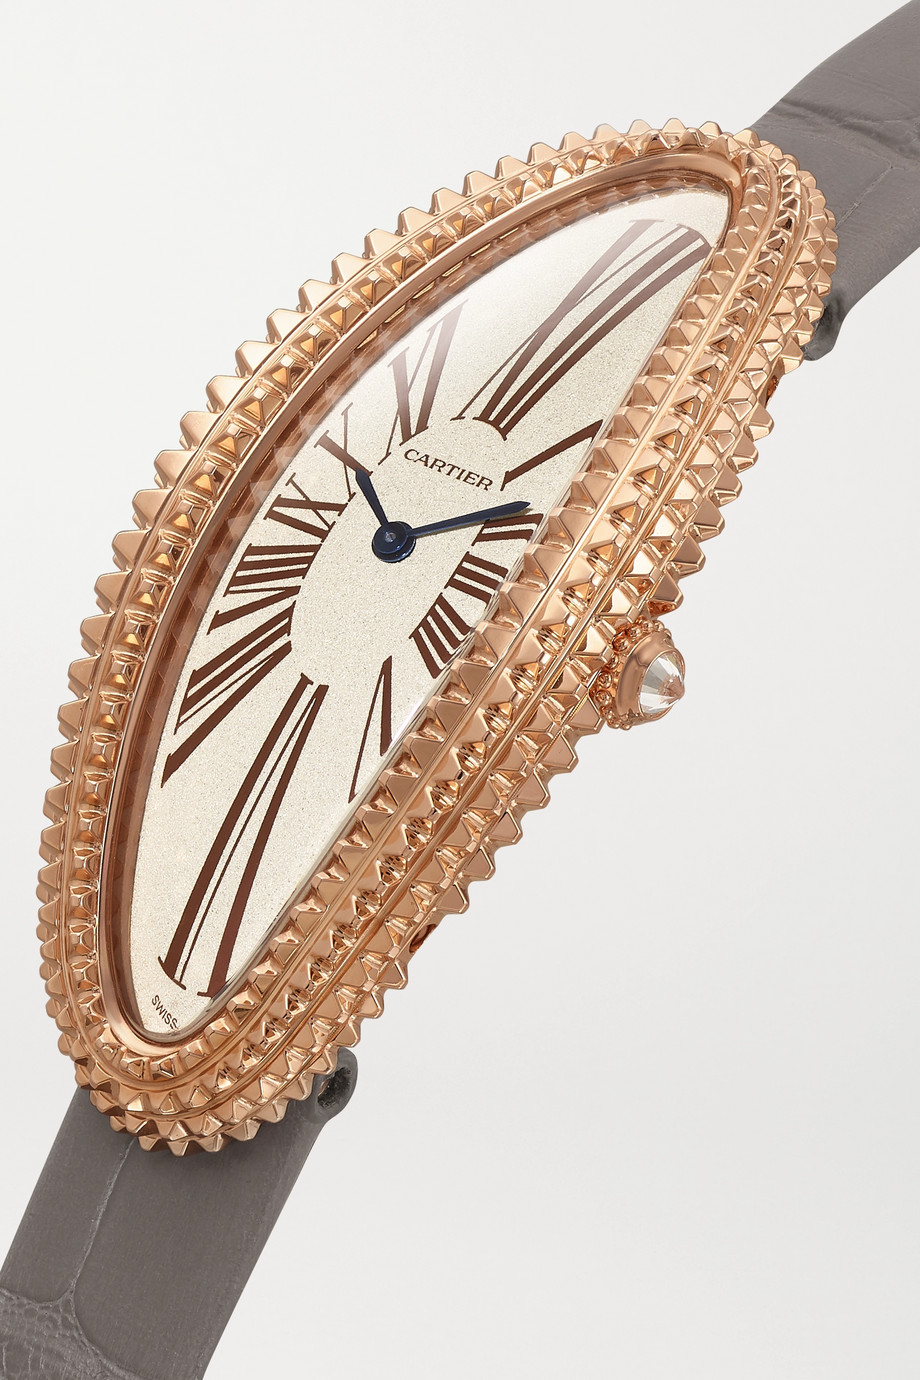 Cartier Baignoire Allongée 47mm medium 18-karat rose gold, alligator and diamond watch